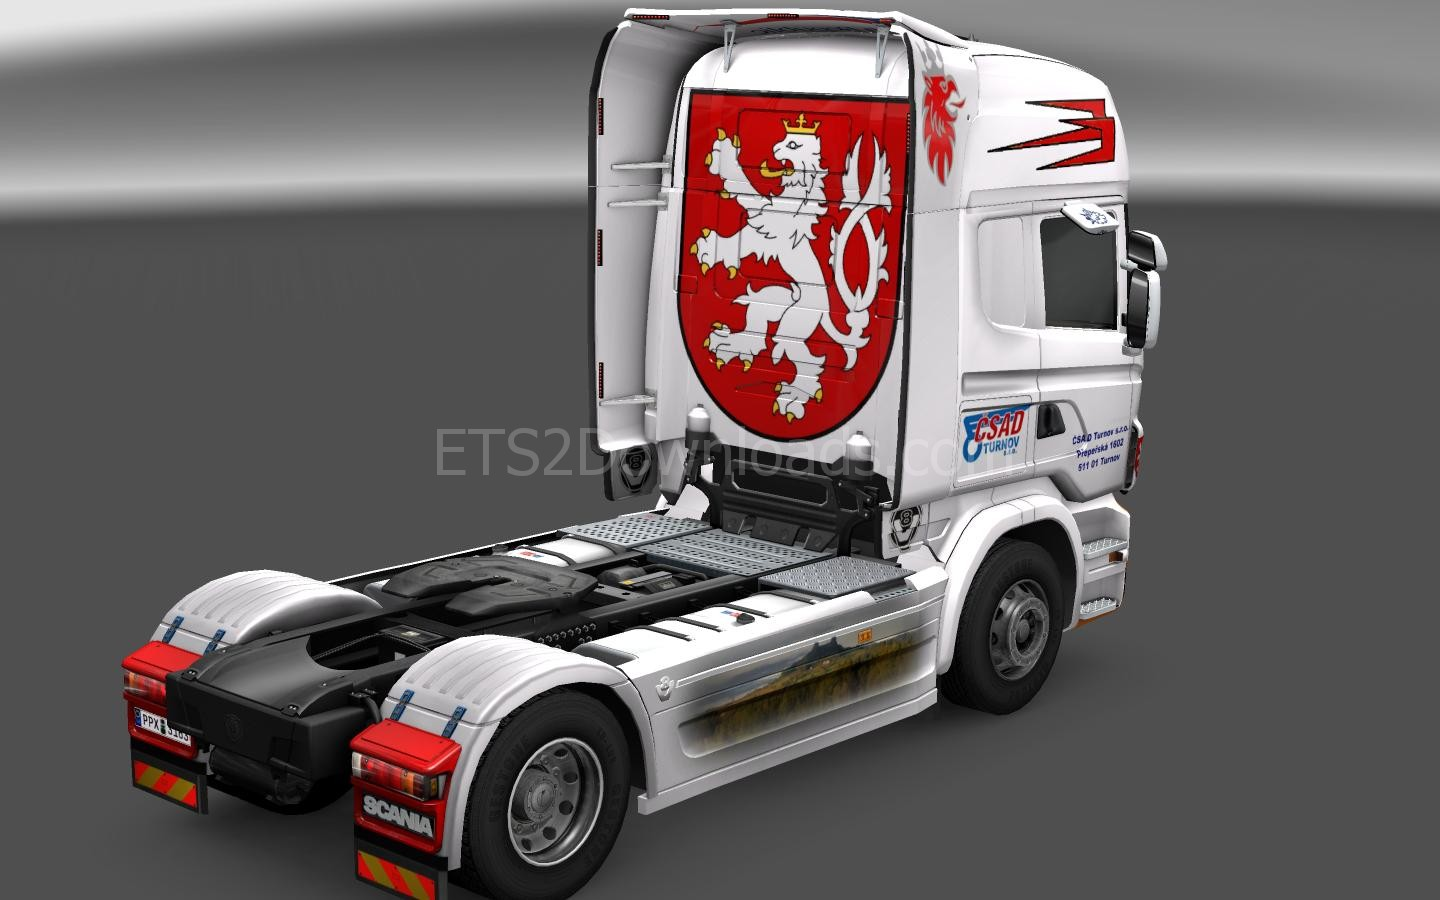 csad-turnov-skin-for-scania-r2009-ets2-1